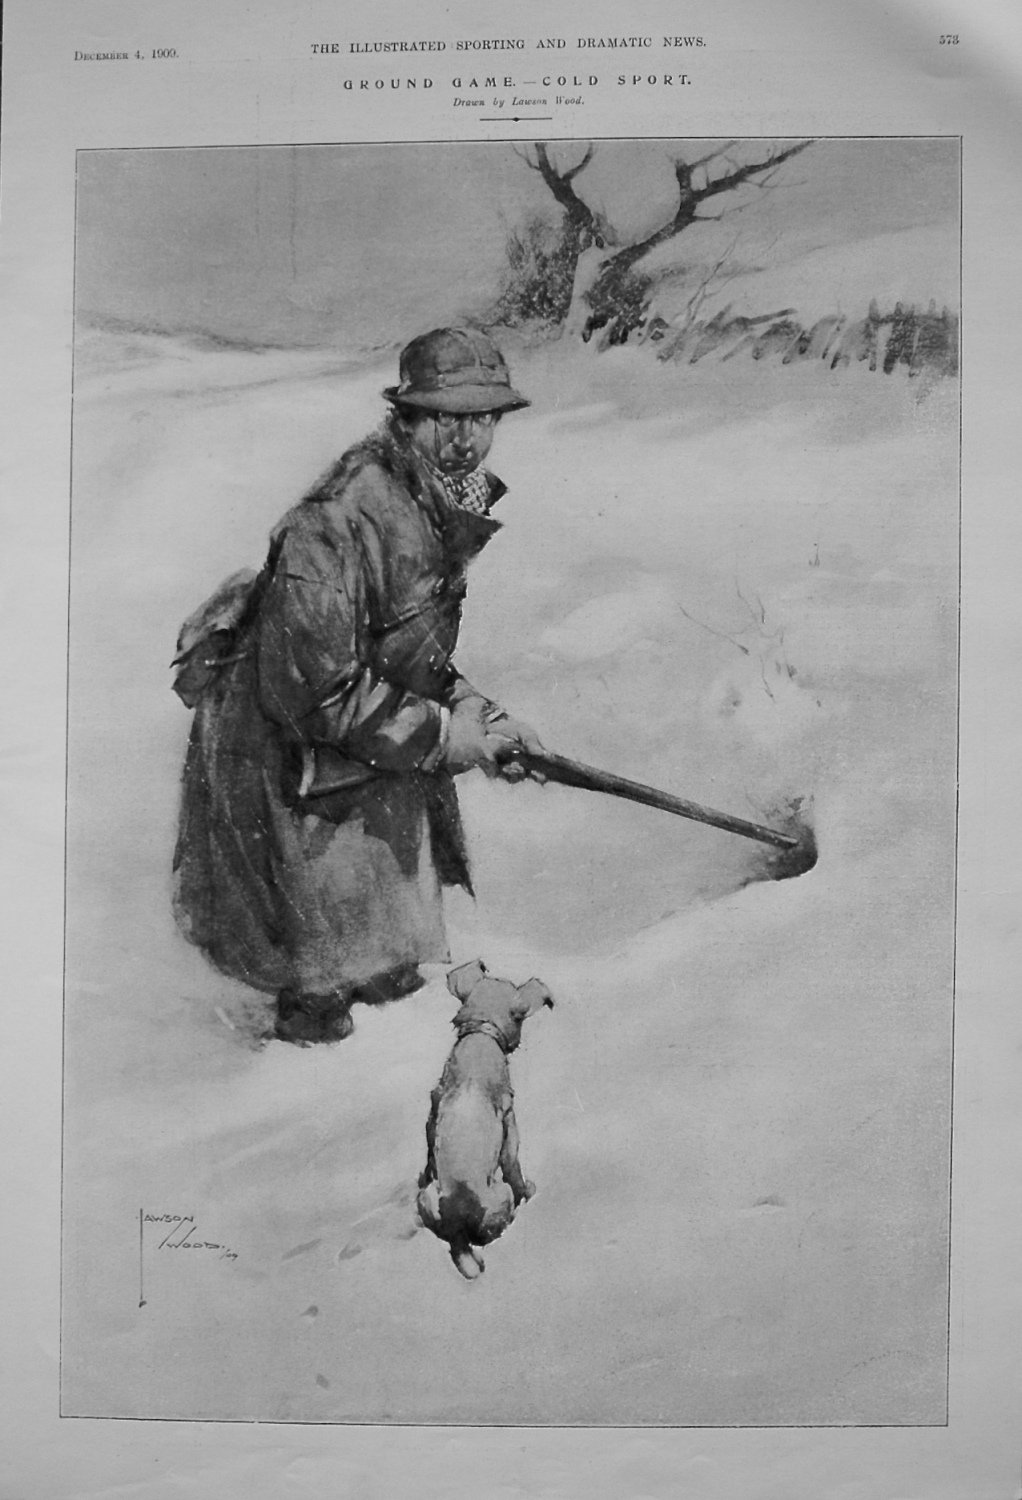 Ground Game. - Cold Sport. 1909